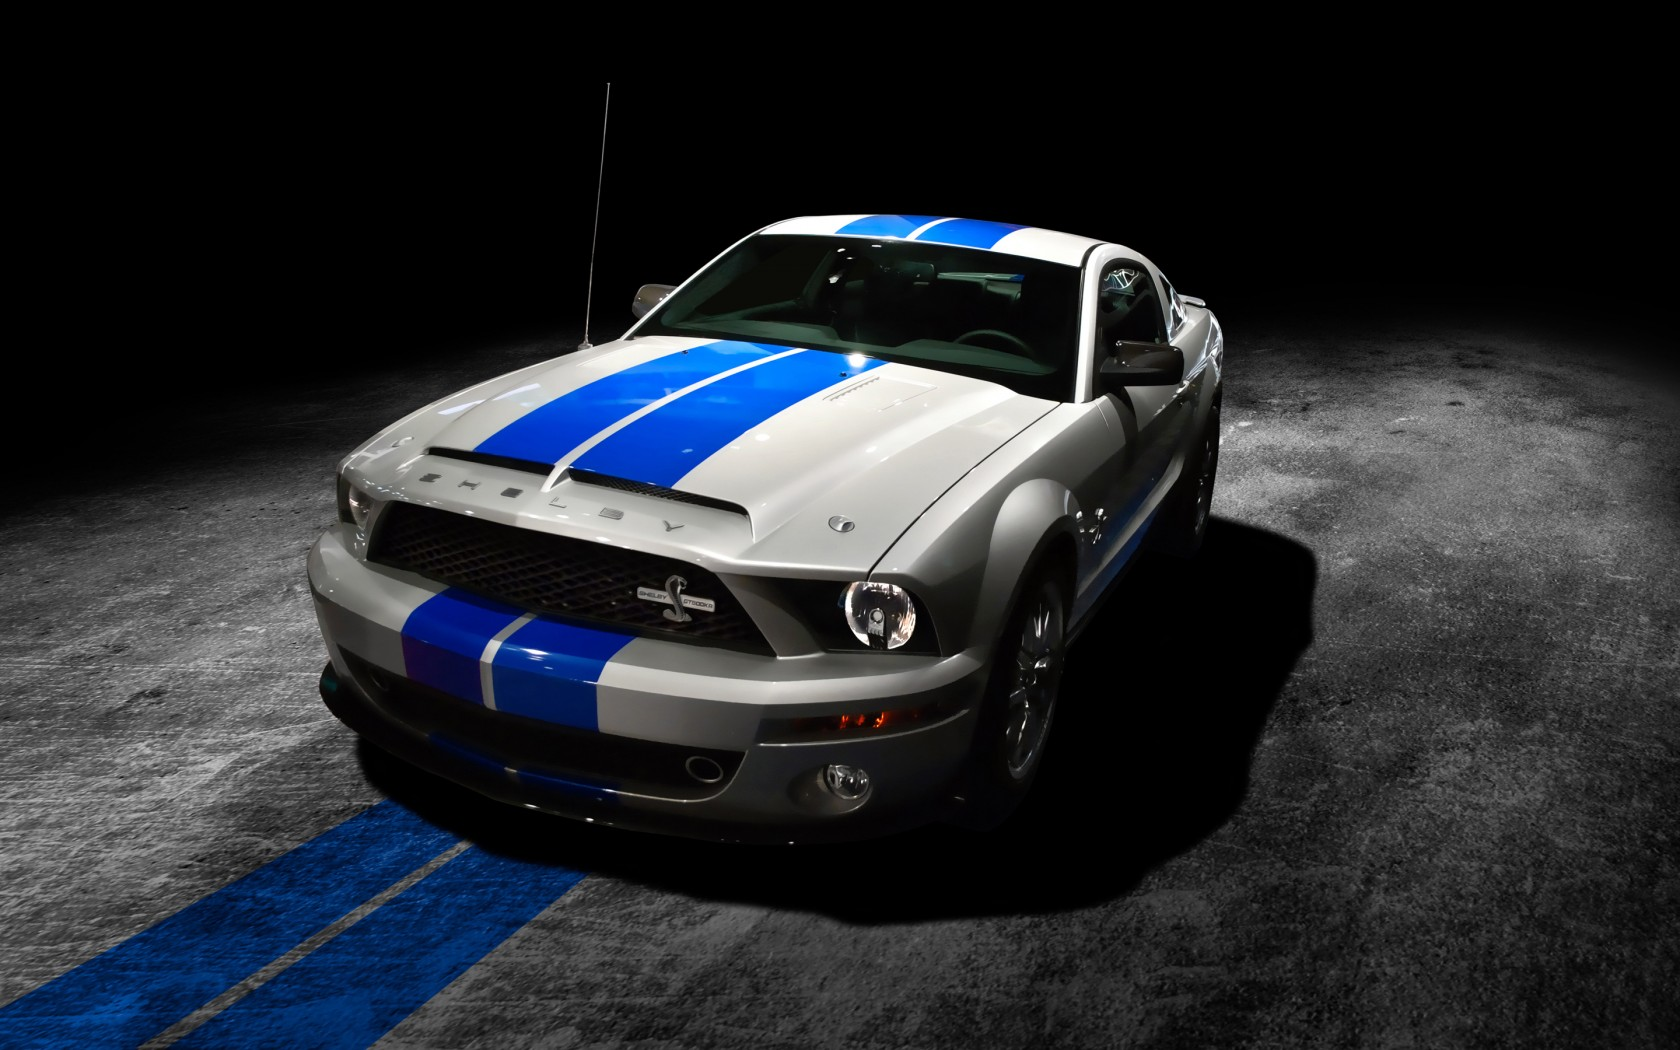 Hd Wallpapers Cars Mustang Ford Mustang Shelby Gt500 2013 Wallpapers Hd Wallpapers